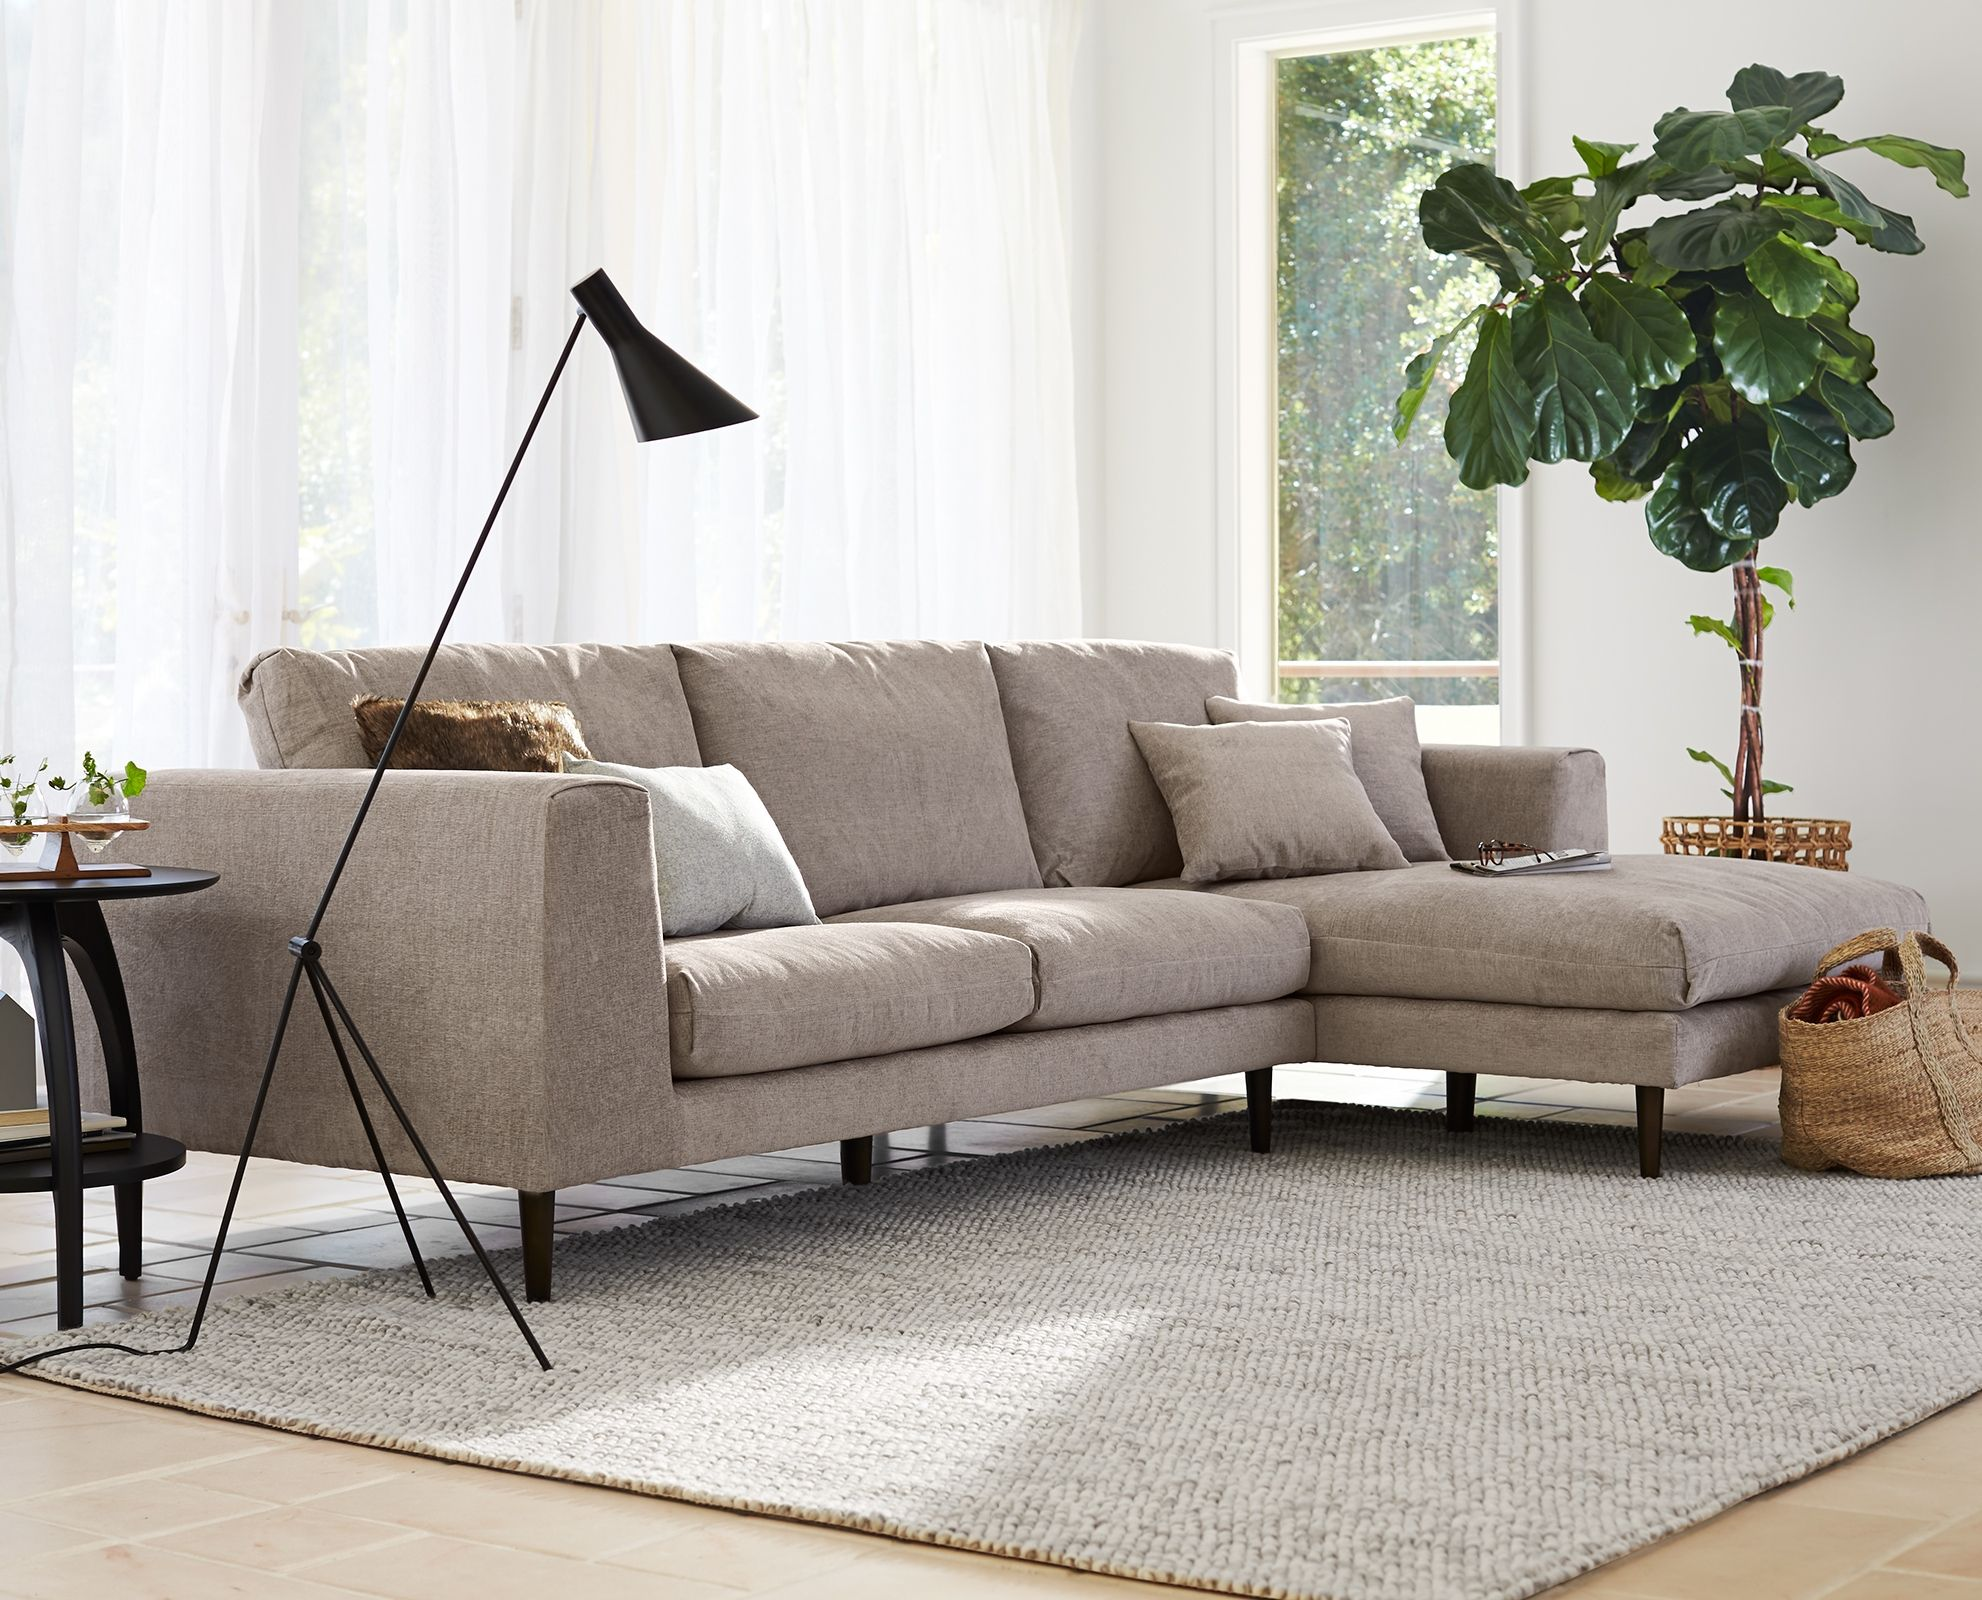 Living Room Design With Sectional Sofa Pleasing Scandinavian Design Sectional Sofas  Httpml2R  Pinterest Inspiration